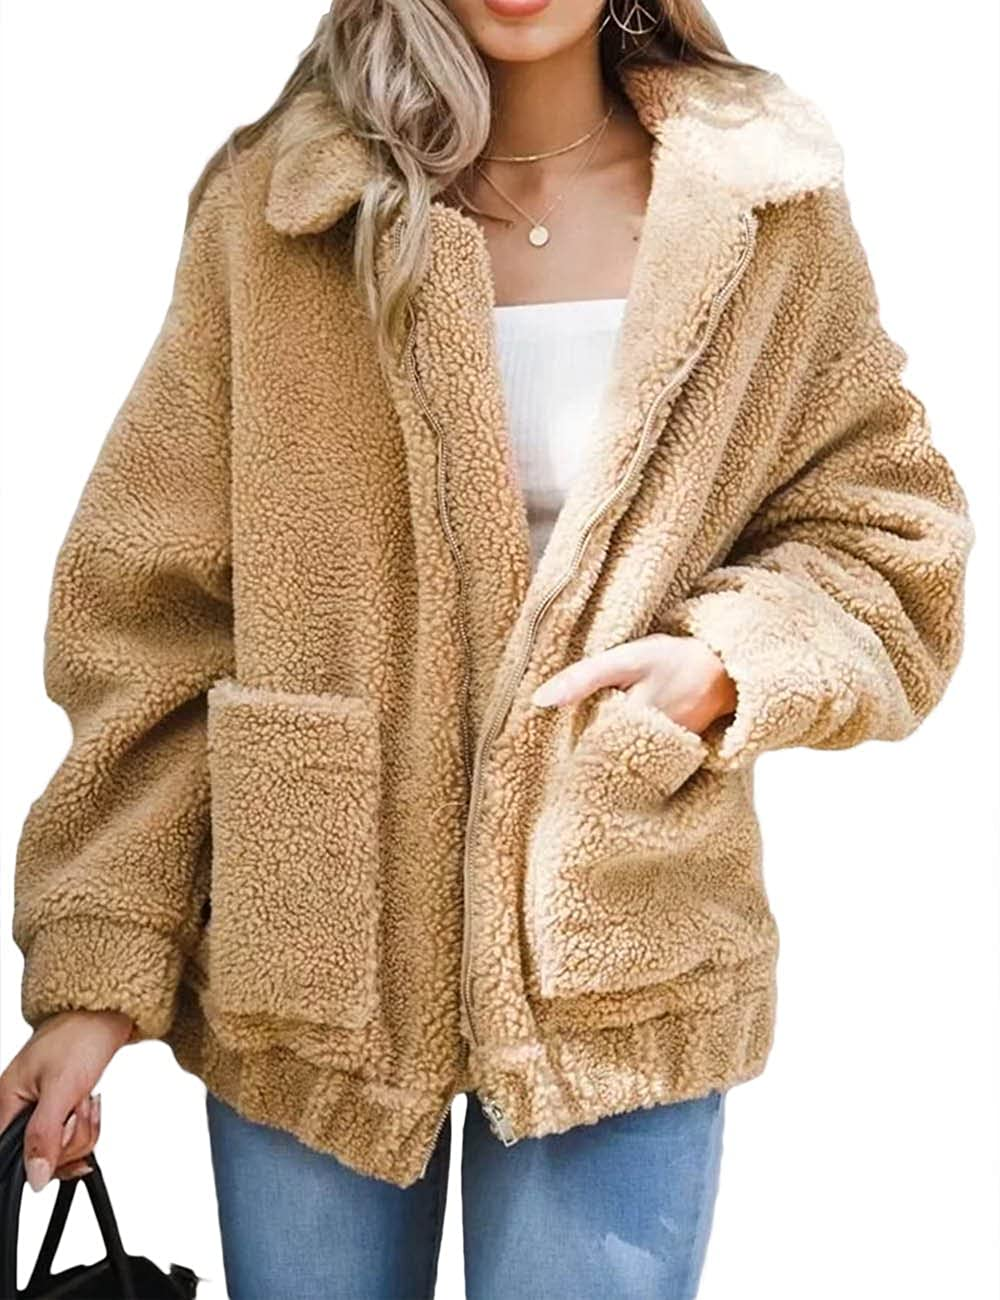 XXXITICAT Women's Winter Faux Fur Outerwear Parkas Jackets